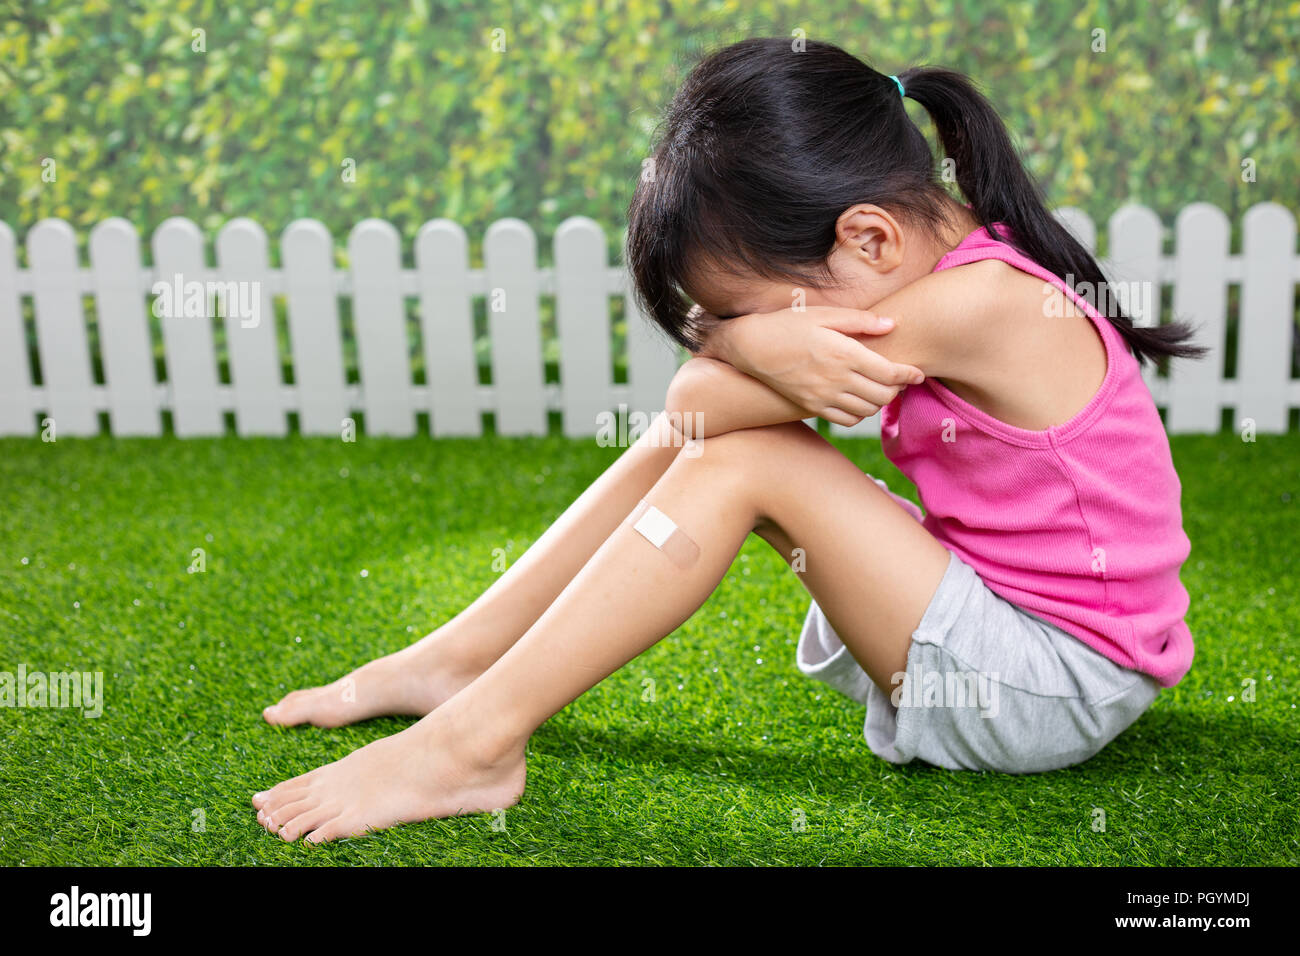 Asian Little Chinese girl sitting on the grass and crying at outdoor park - Stock Image